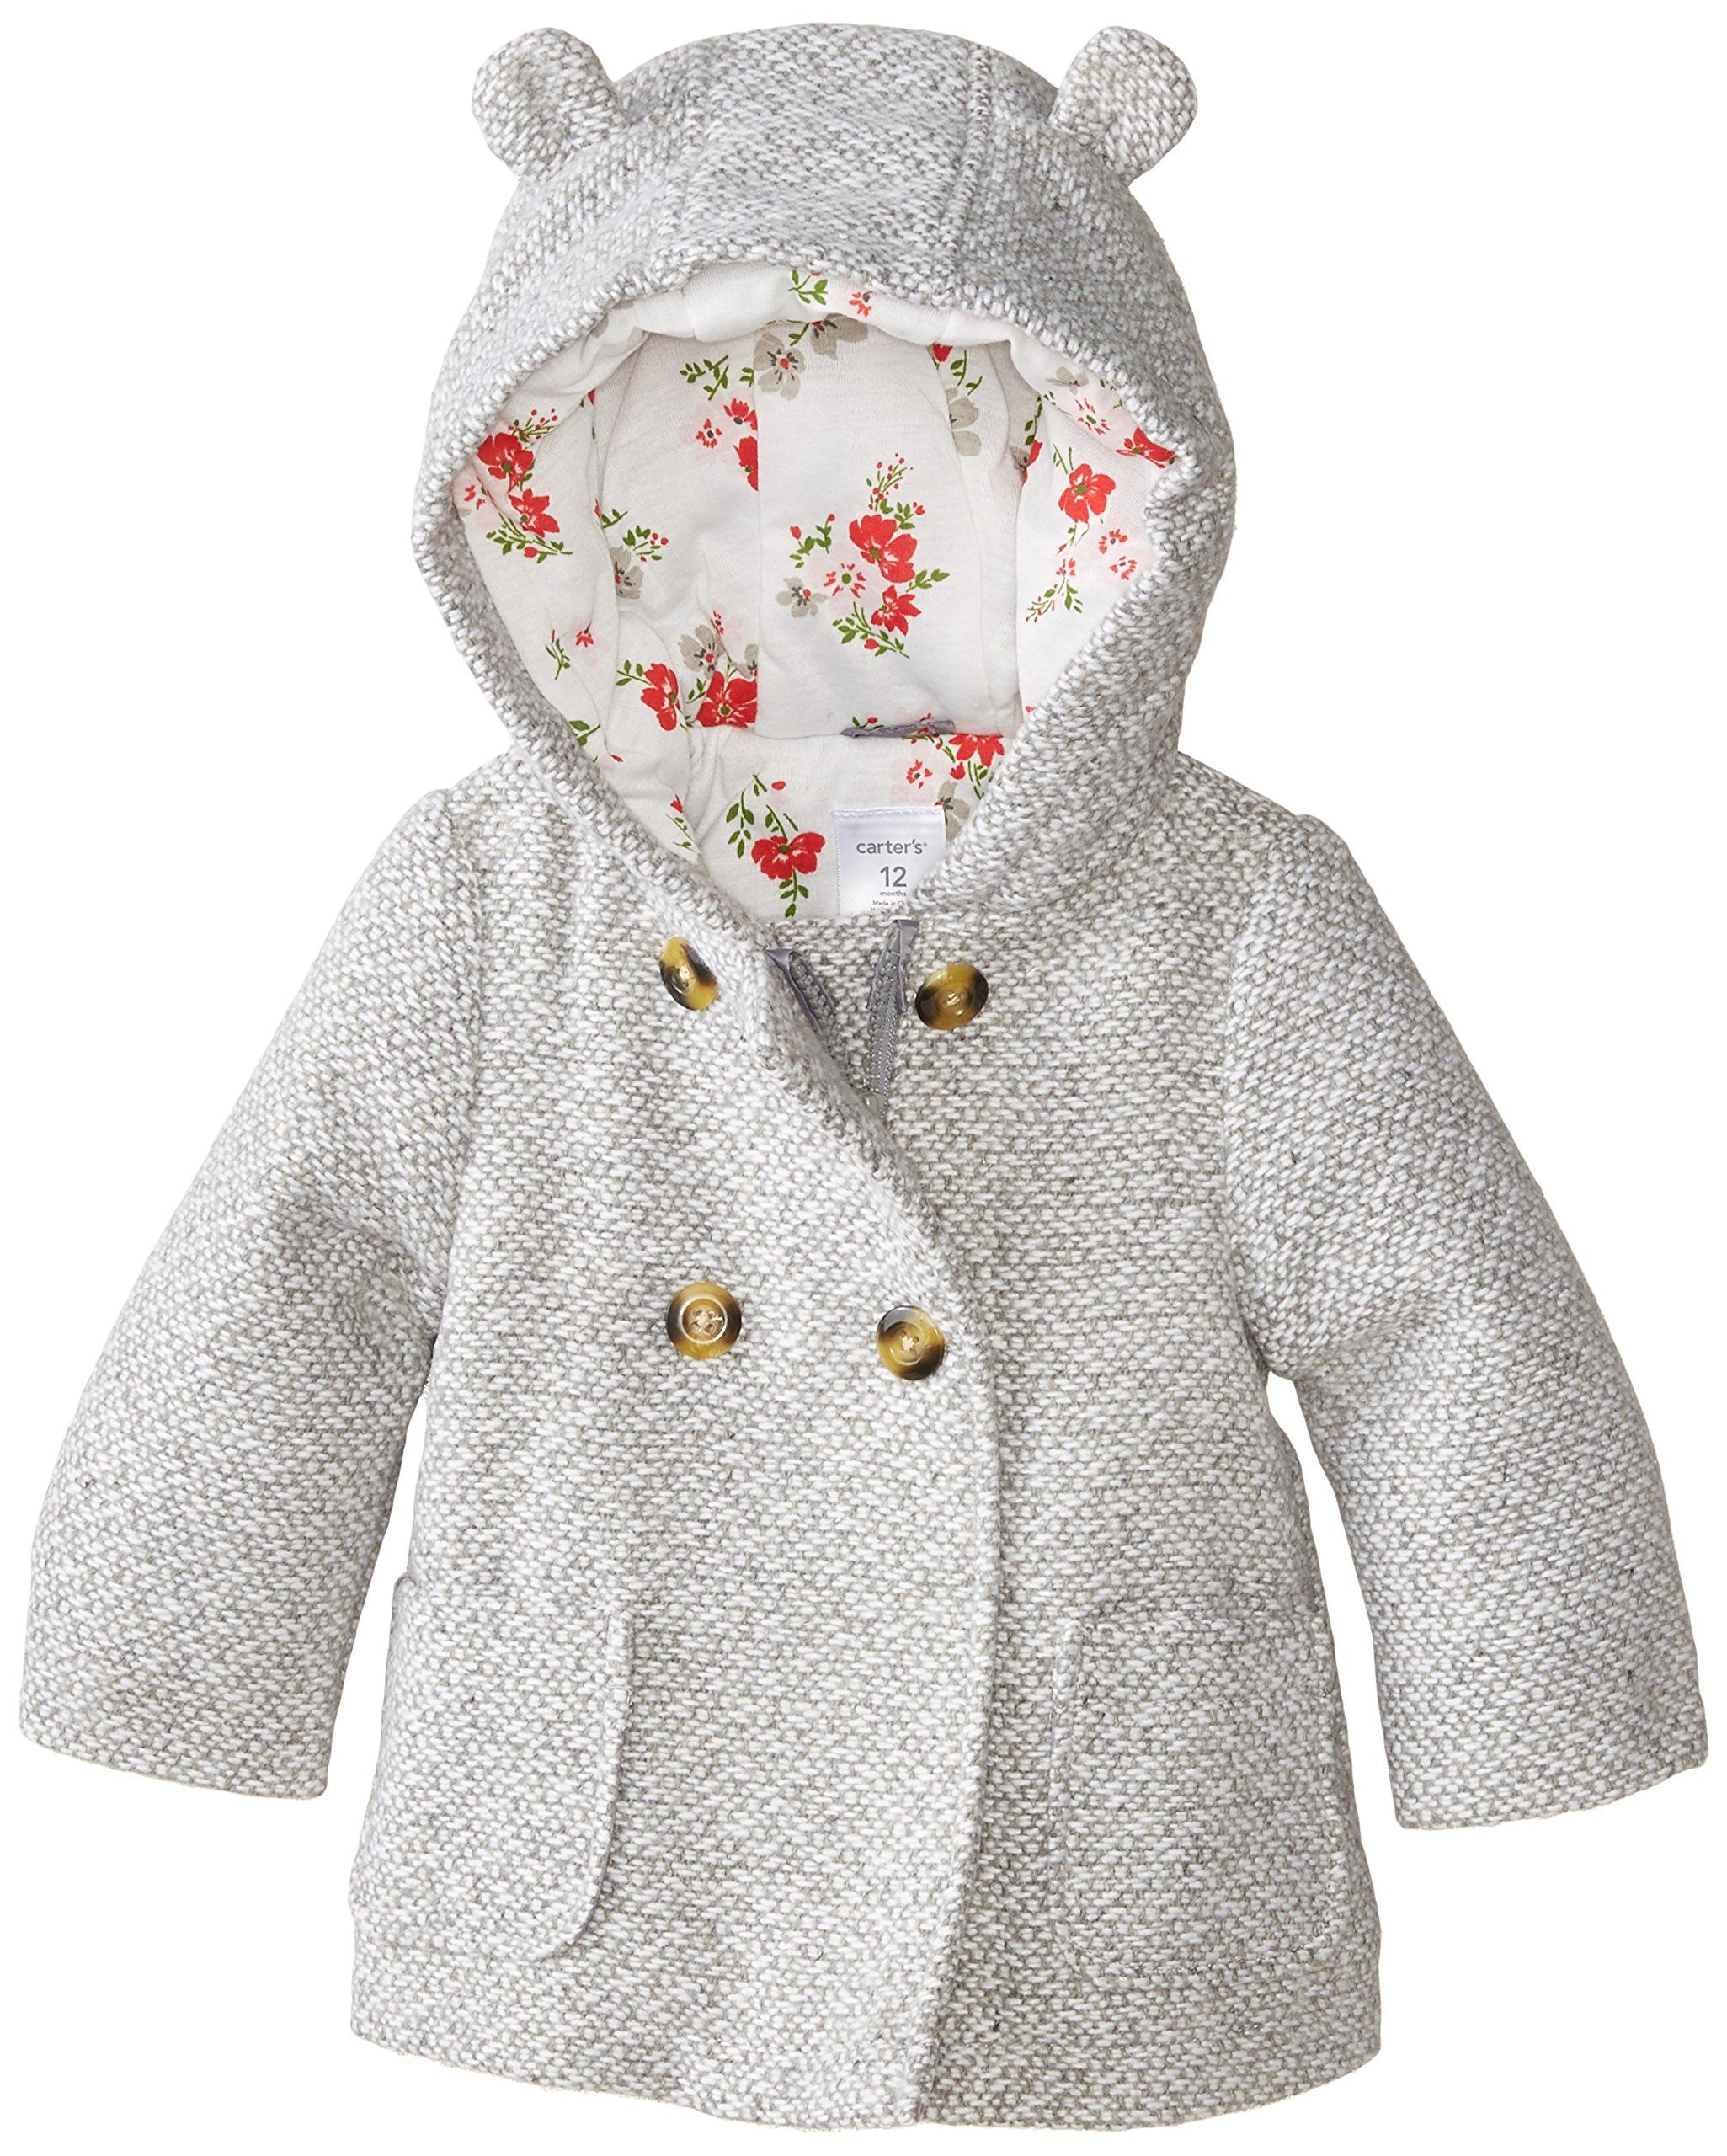 855bff0eaca1 Amazon.com  Carter s Baby Girls  Infants Trans Single Jacket ...